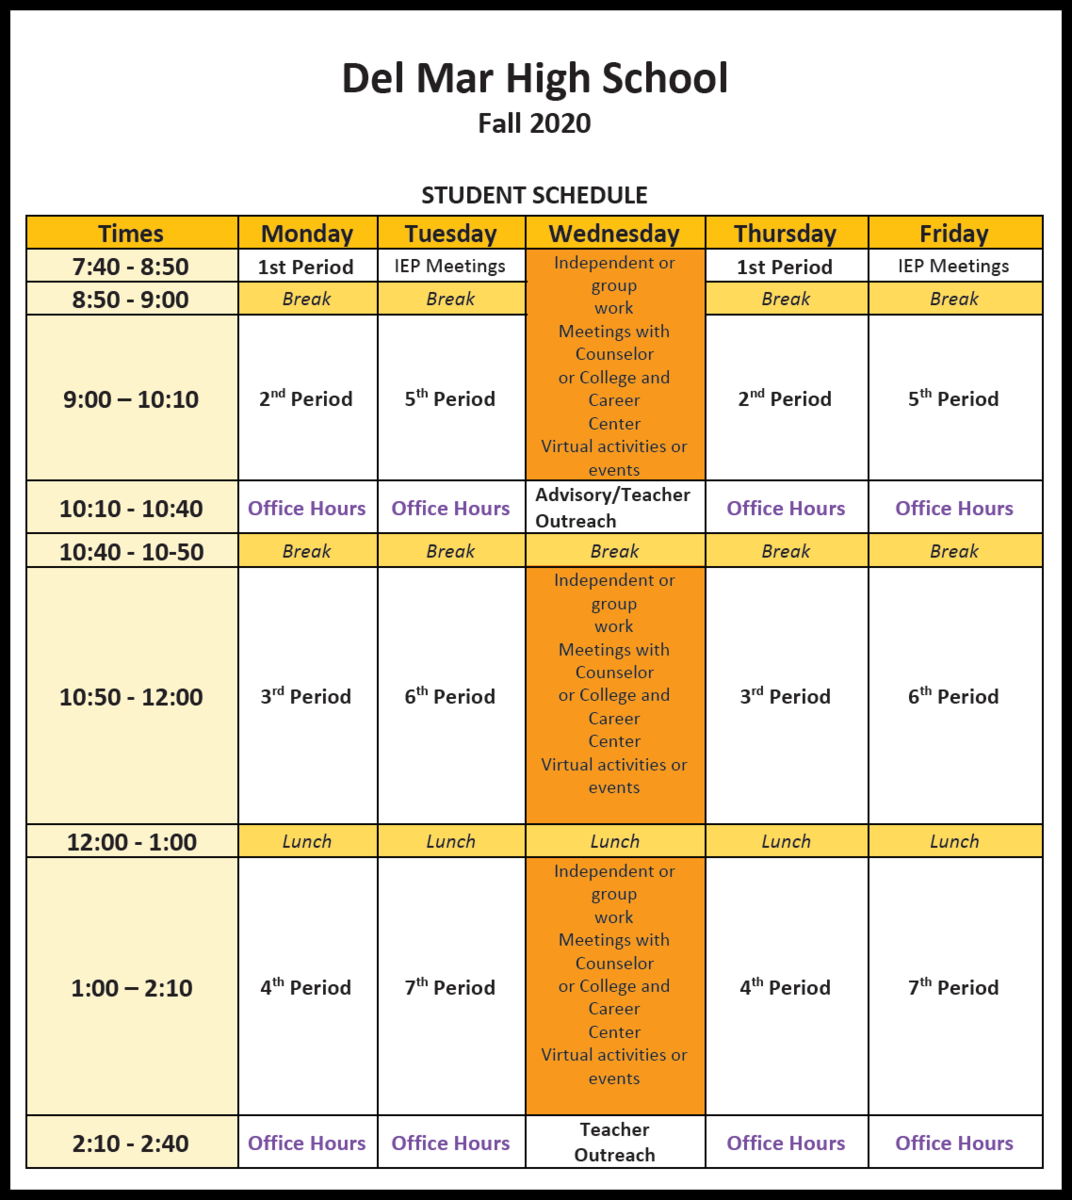 del mar distance learning schedule for fall 2020